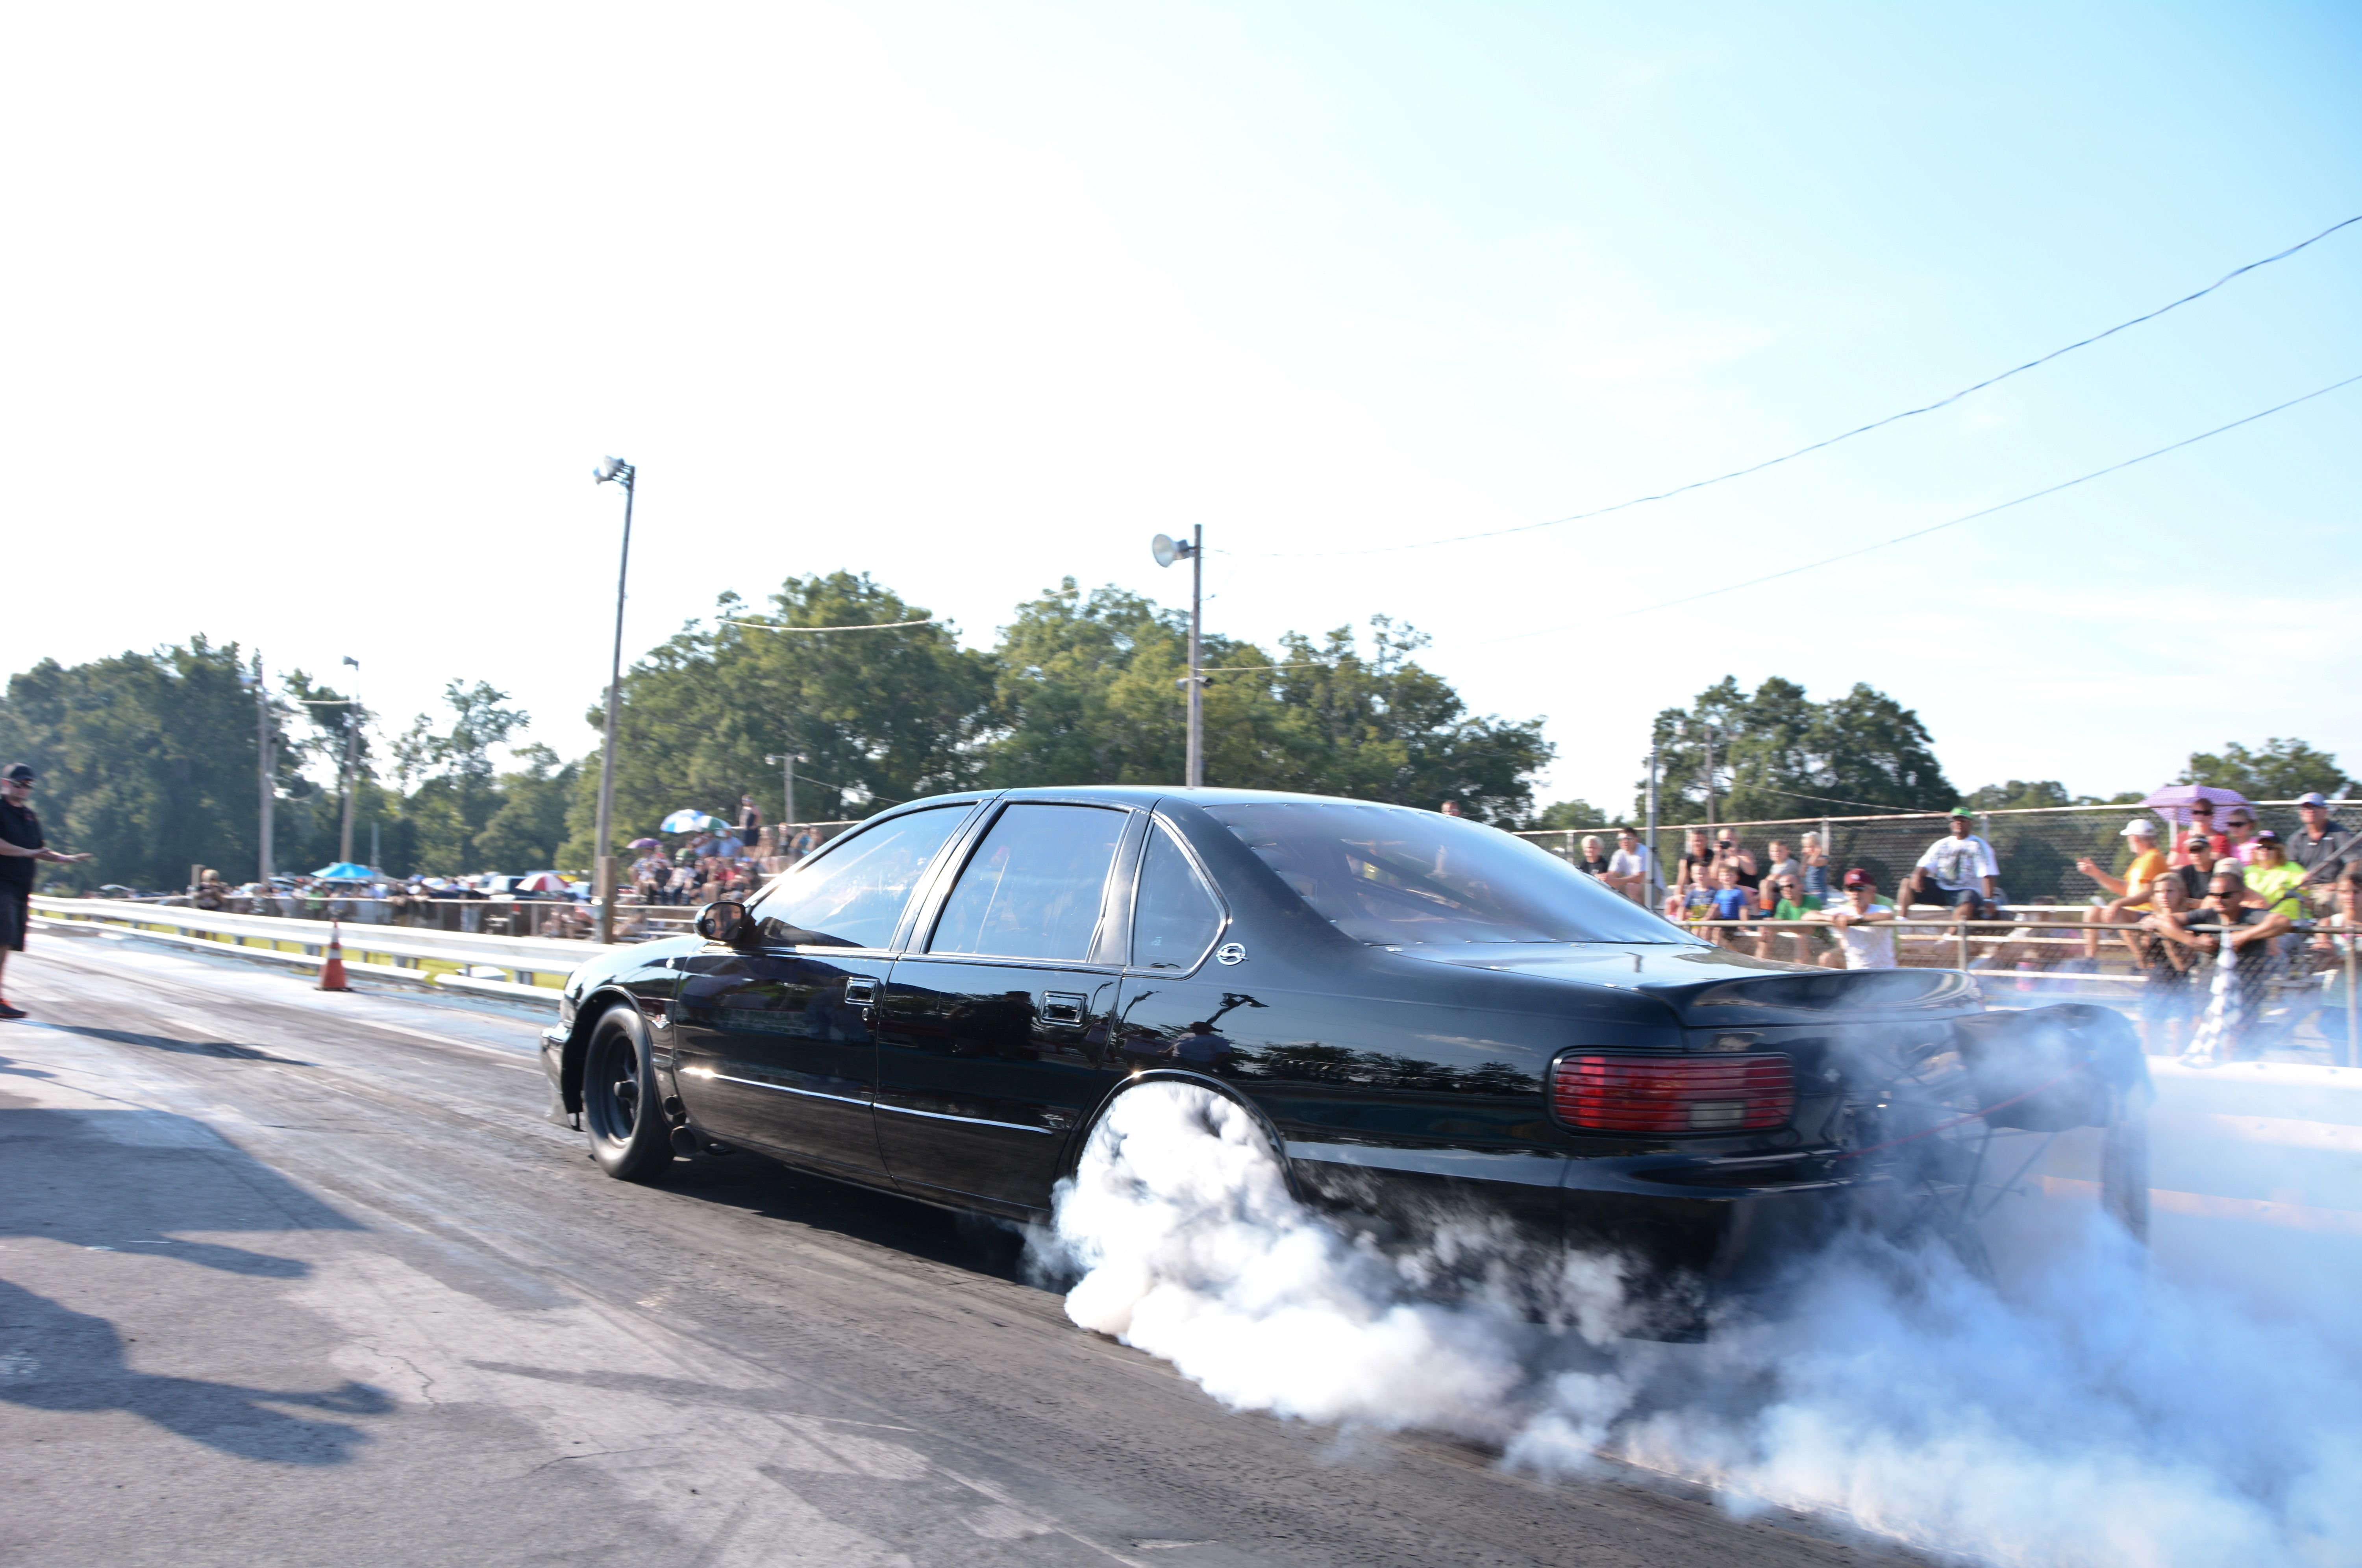 1996 chevrolet impala ss outlaw drag dragster race burnout usa 05 wallpaper 6000x3984 709483